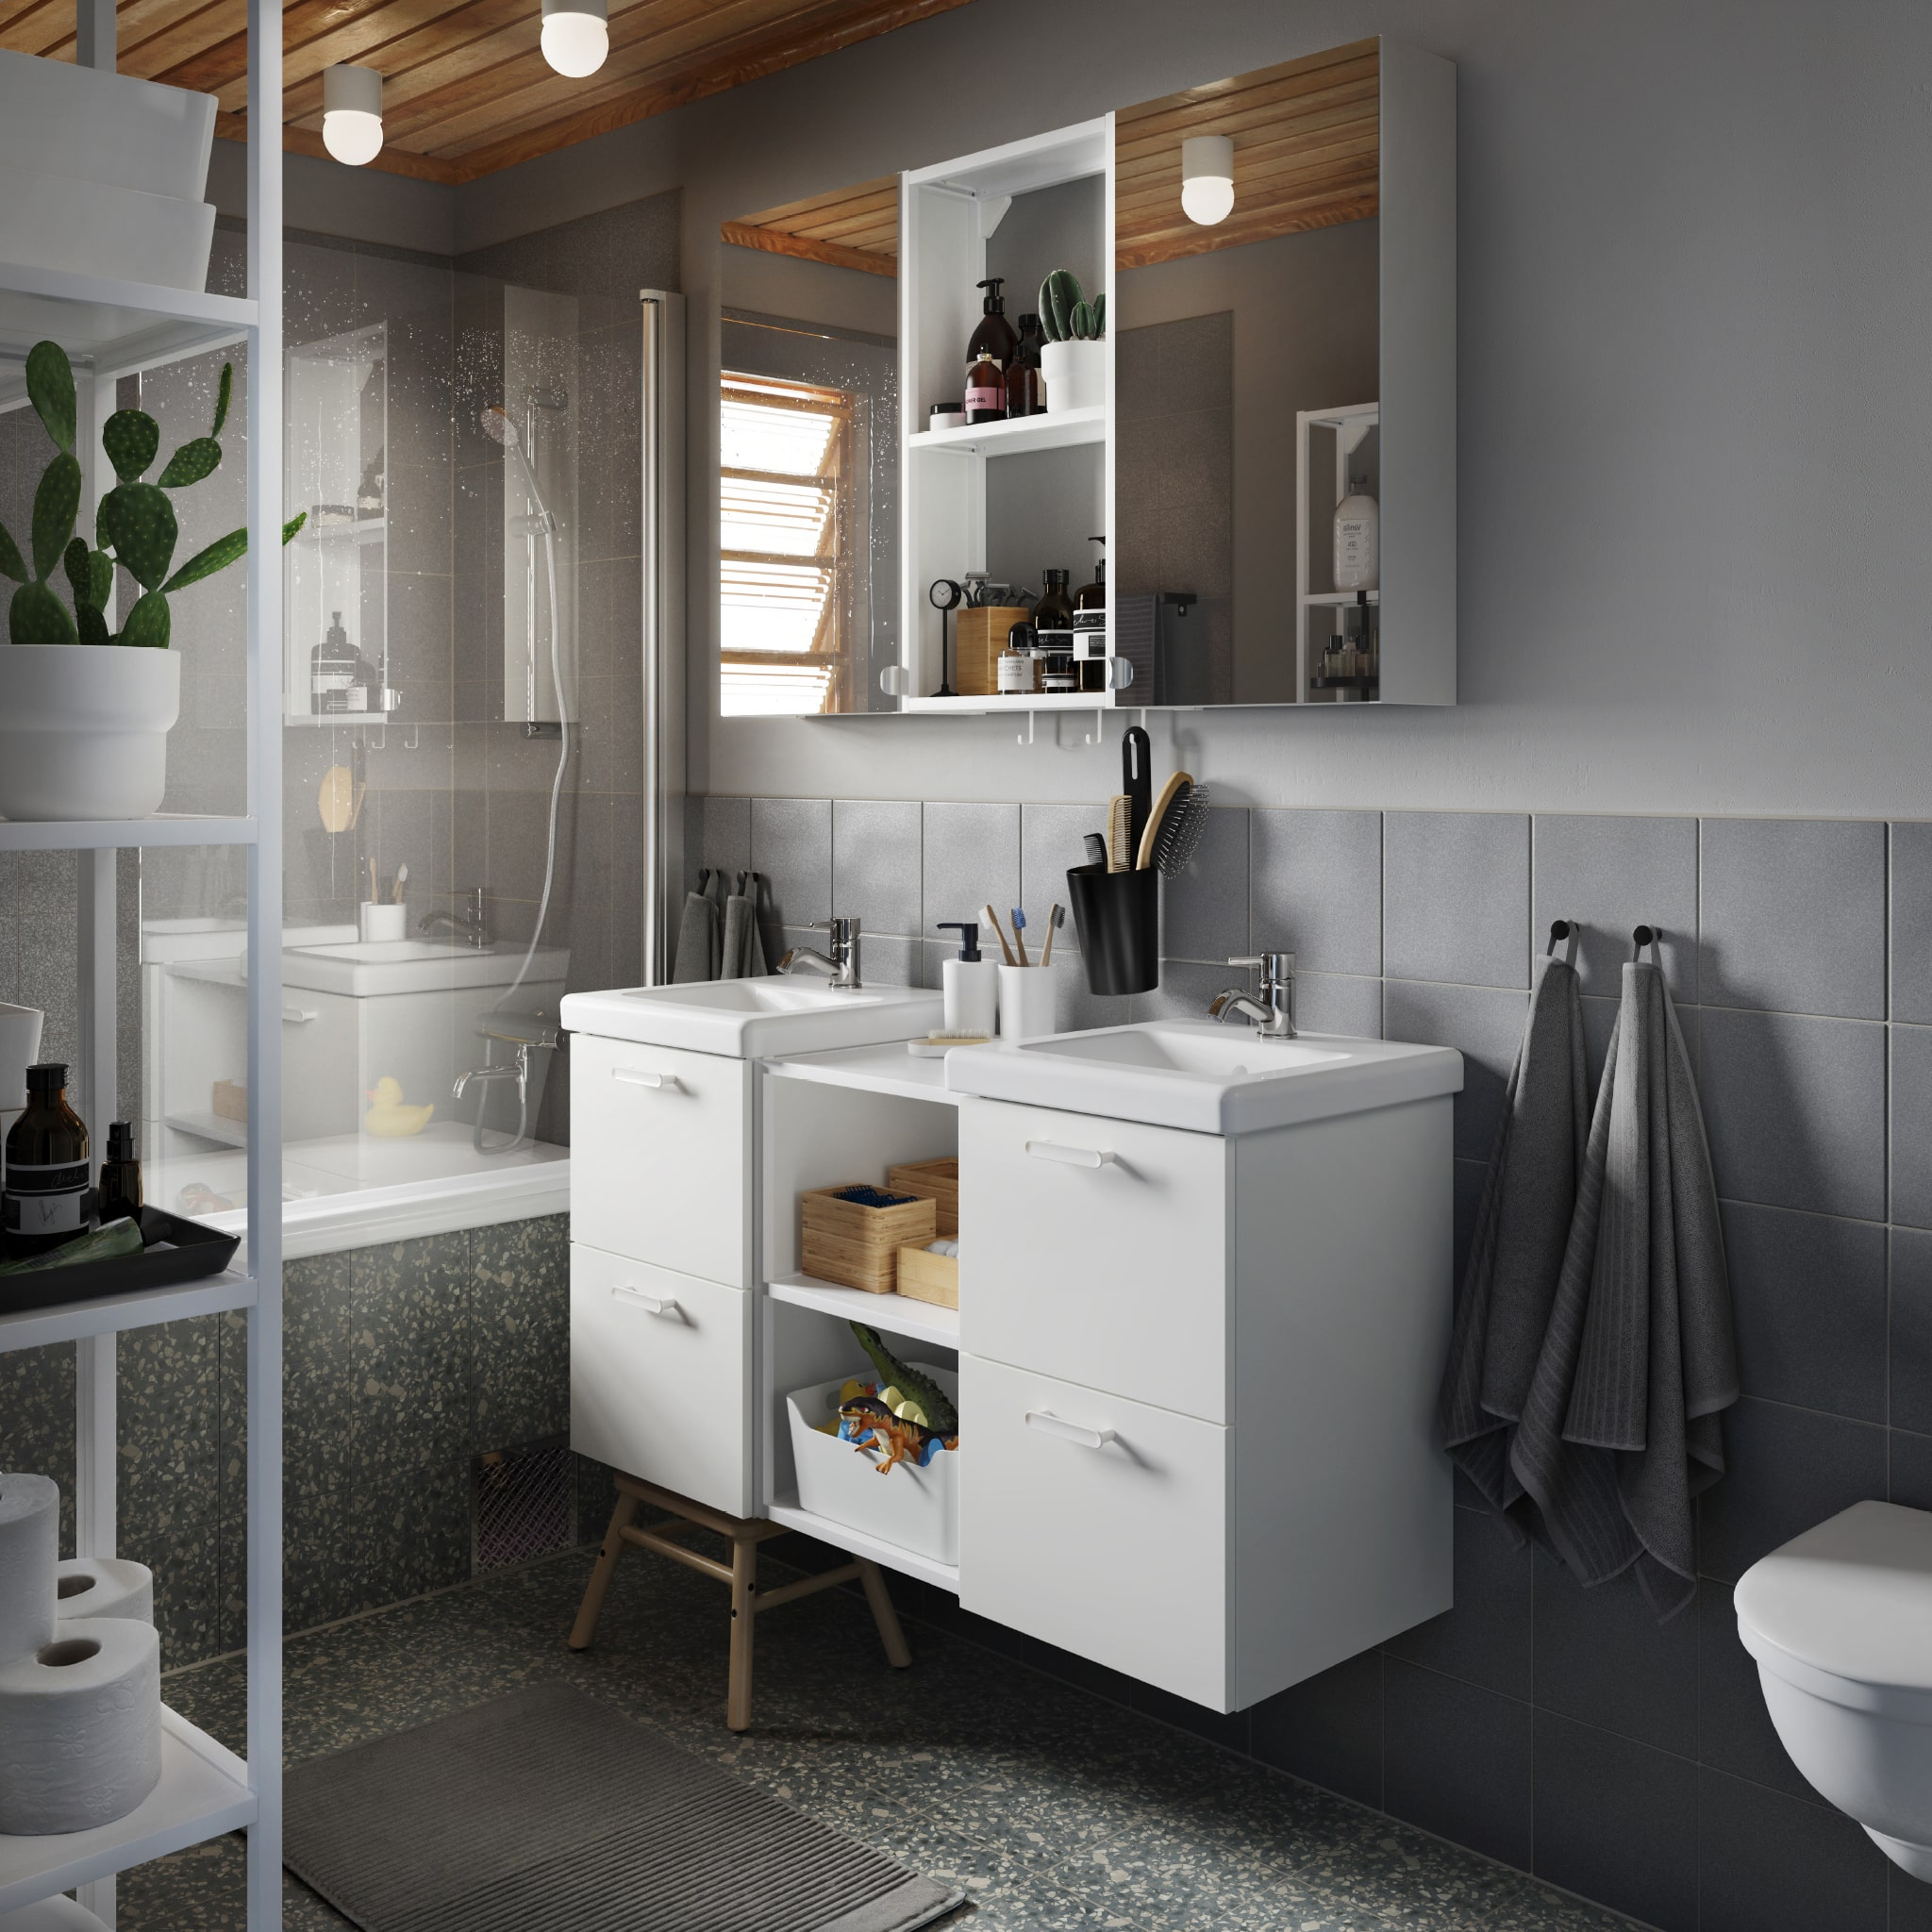 A grey bathroom with a wash-stand/wash-basin in white, a cabinet with mirror doors and bath towels and a bath mat in grey.